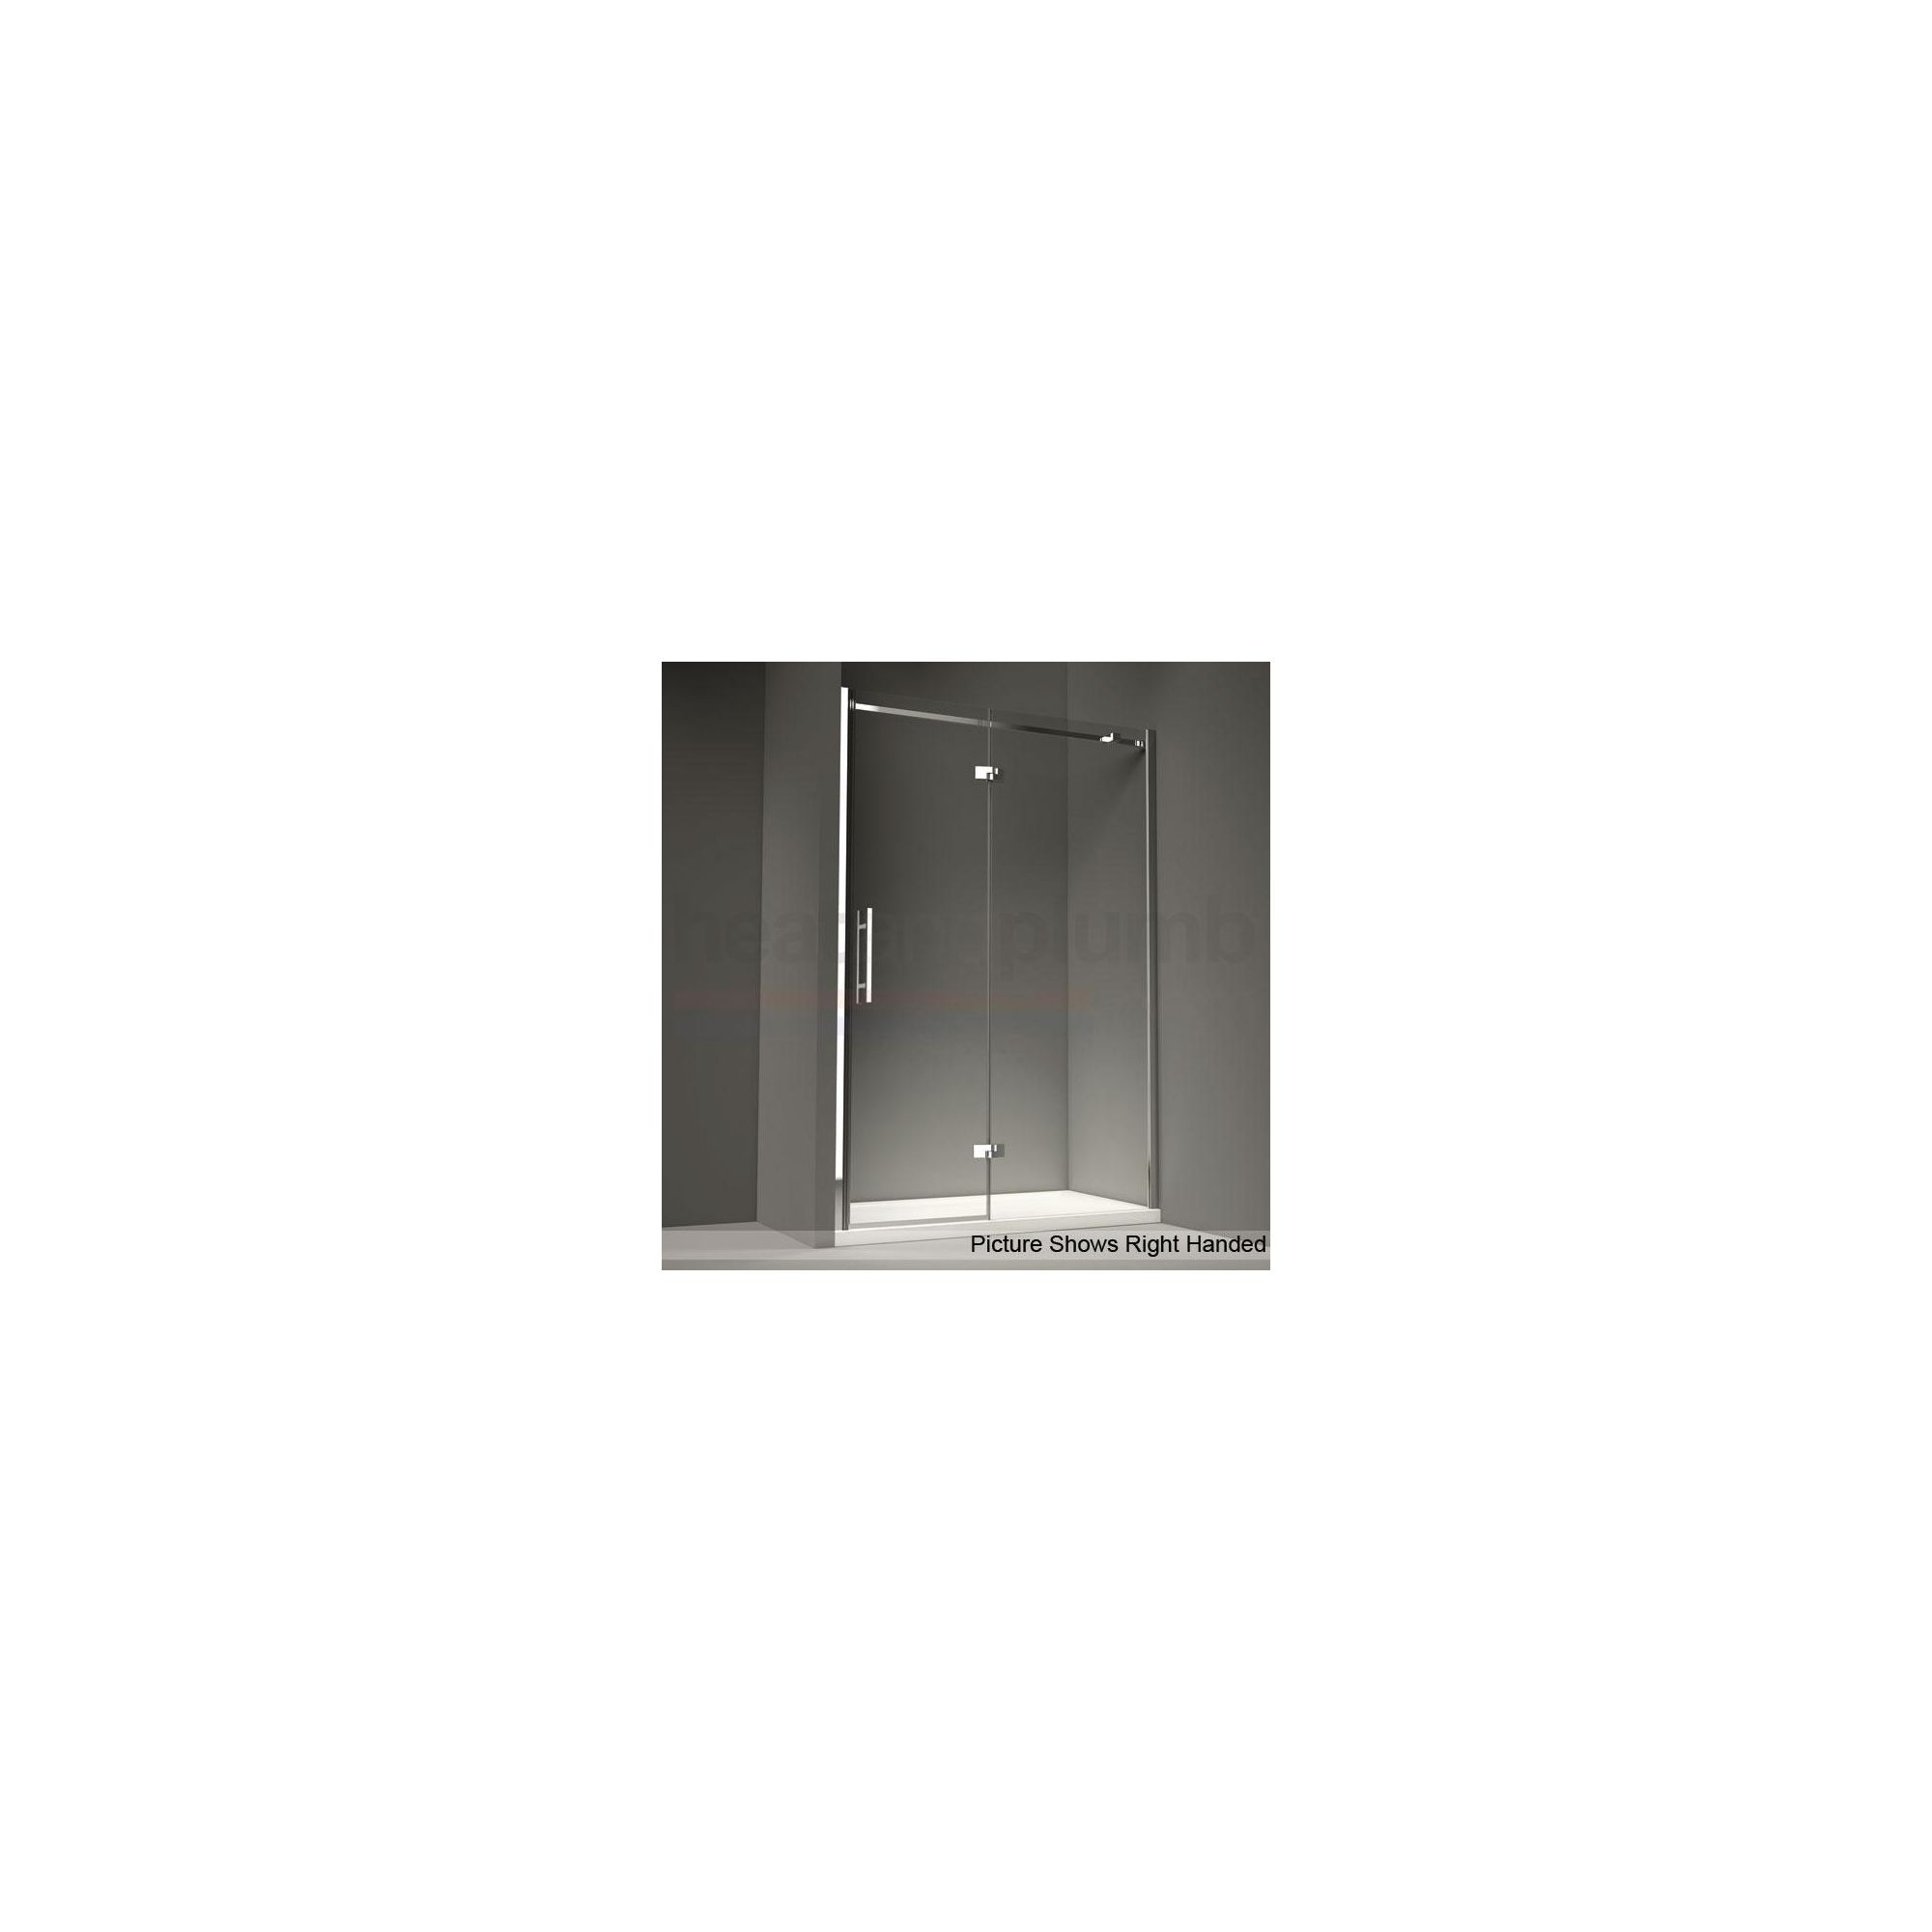 Merlyn Series 9 Inline Hinged Door ALCOVE Shower Enclosure 1200mm x 800mm (Complete with Tray) - 8mm Glass at Tescos Direct